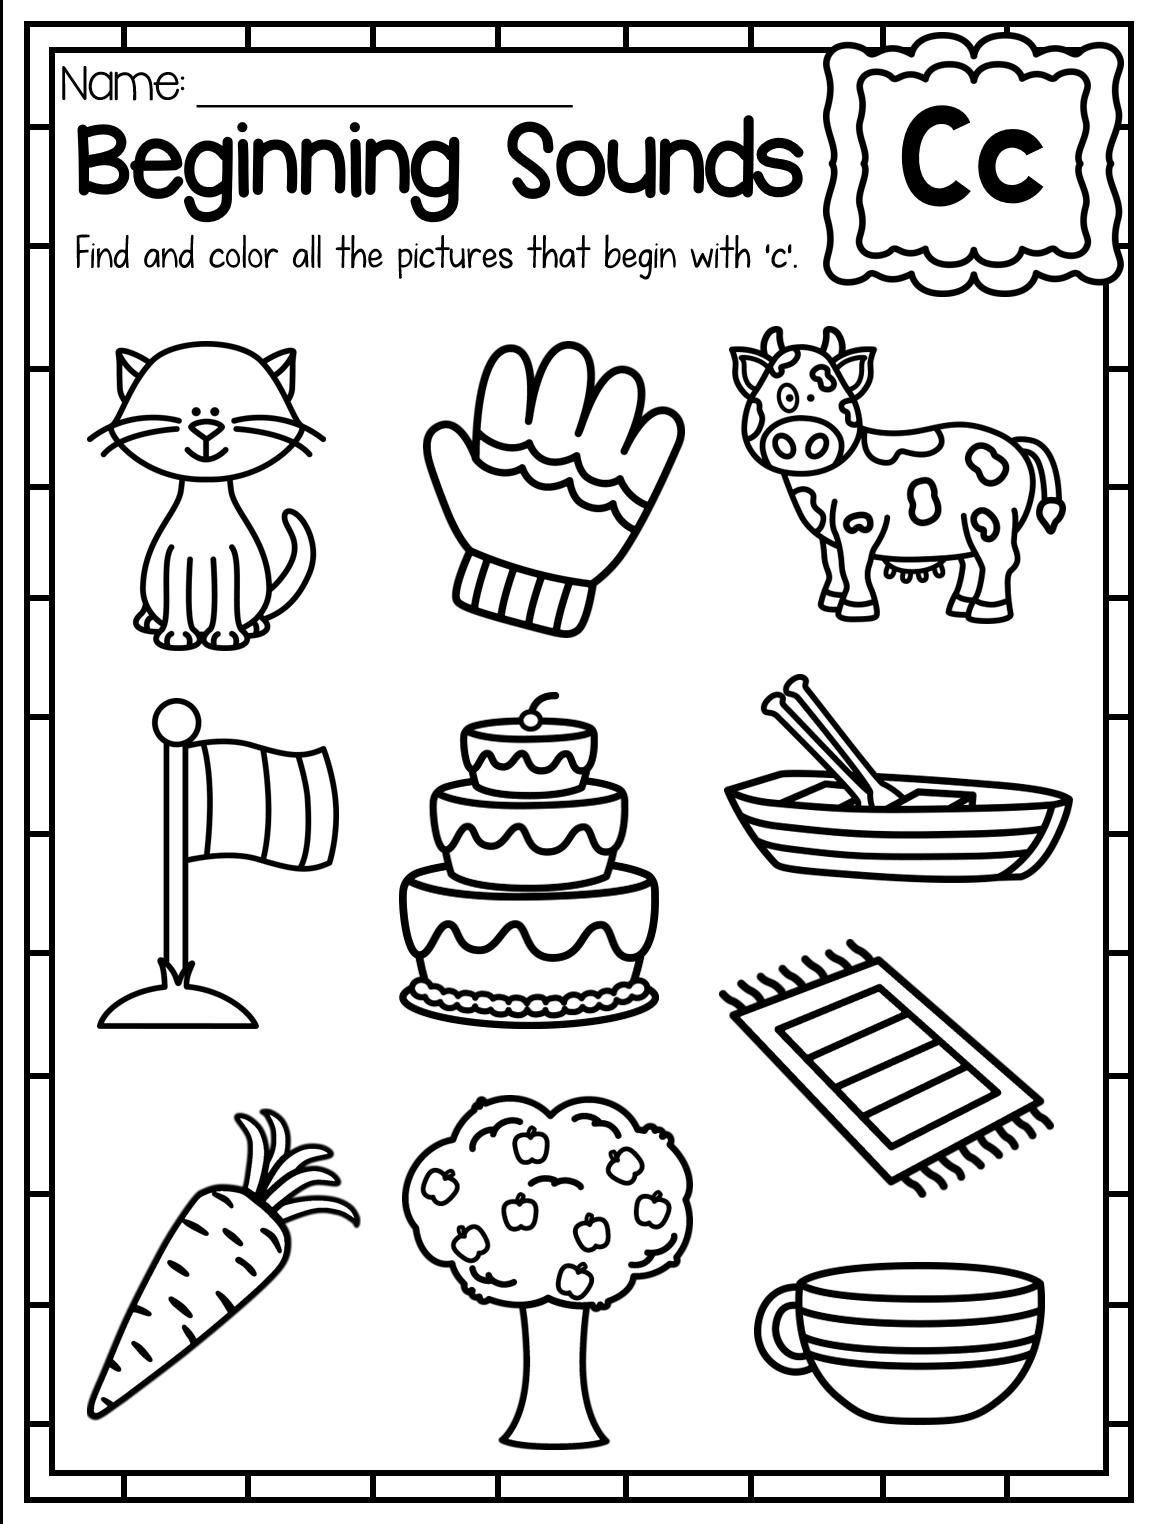 Printable Worksheets Beginning Letter Sounds 2 In